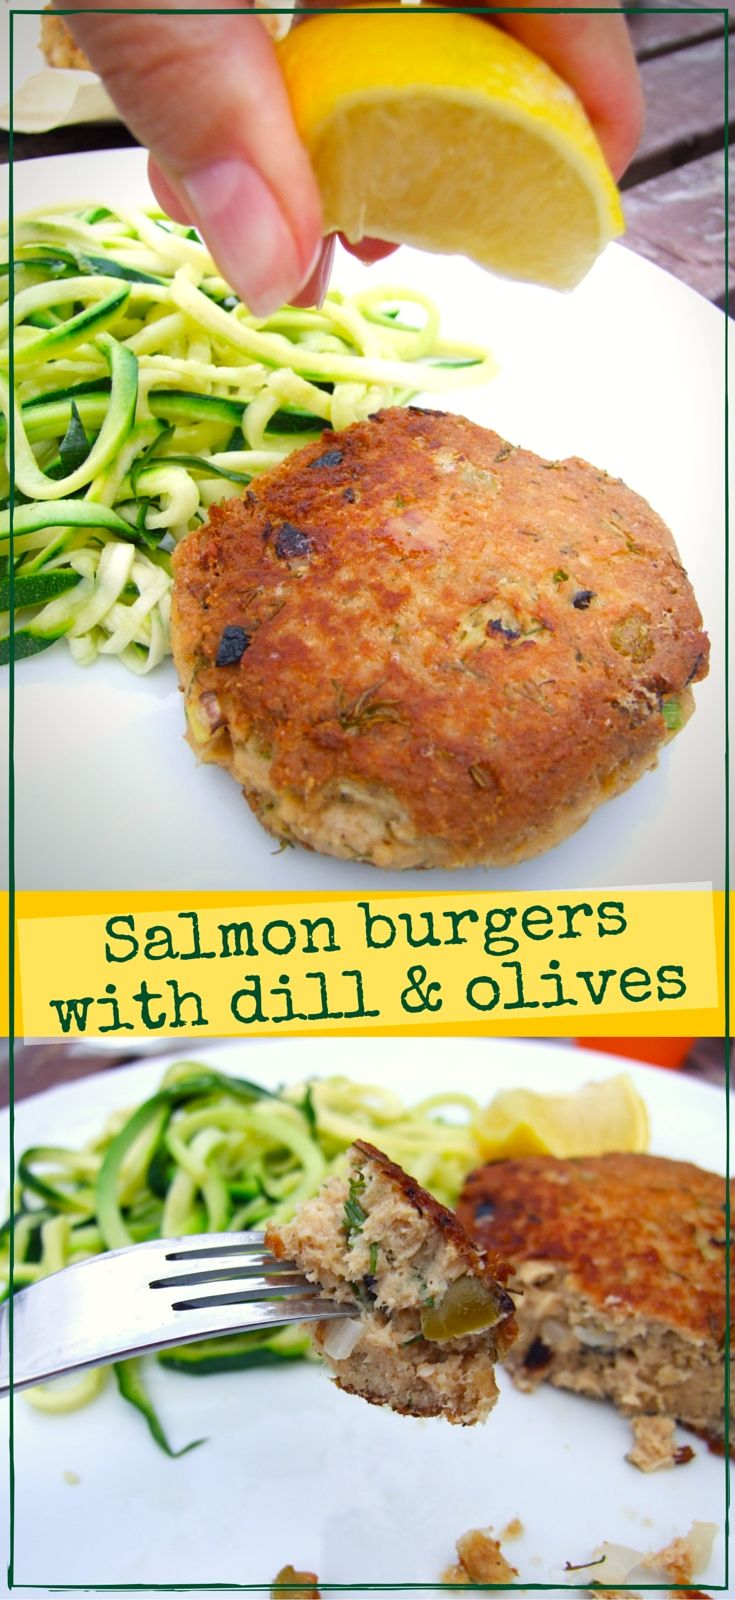 ... salmon burger with olives recipes dishmaps california salmon burger